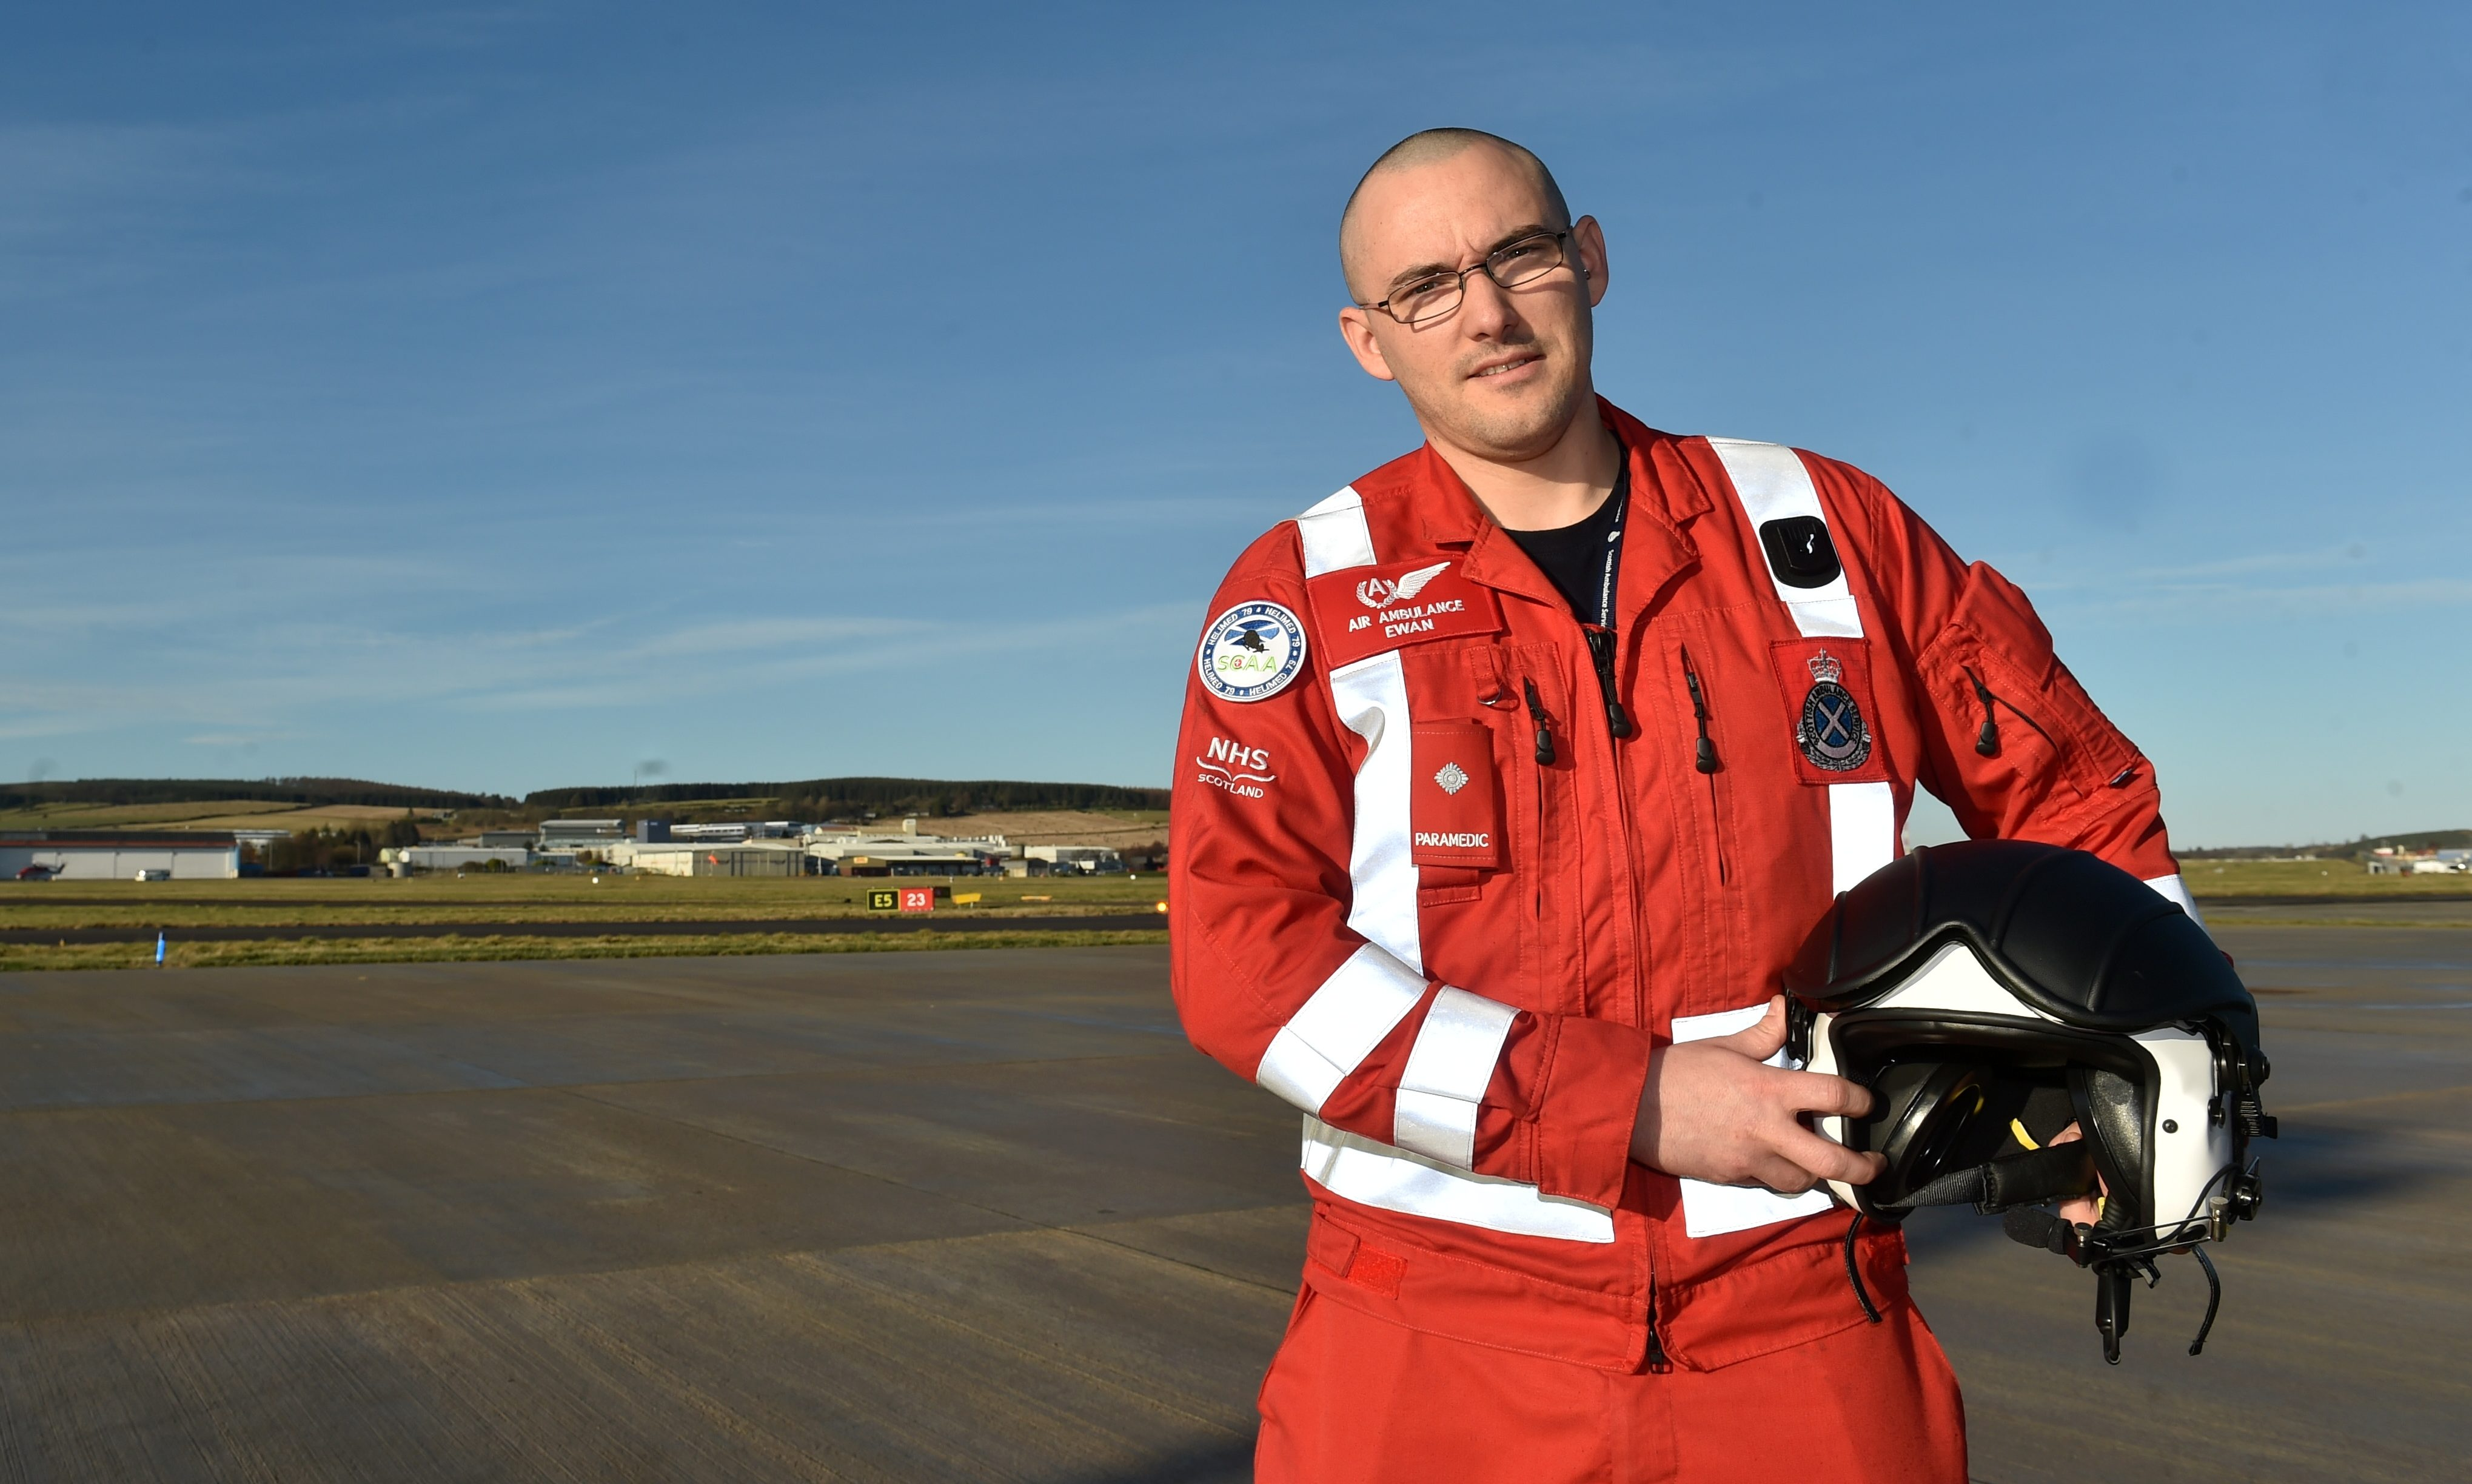 Ewan Littlejohn, lead paramedic with the Aberdeen-based SCAA helimed. Picture by Colin Rennie.